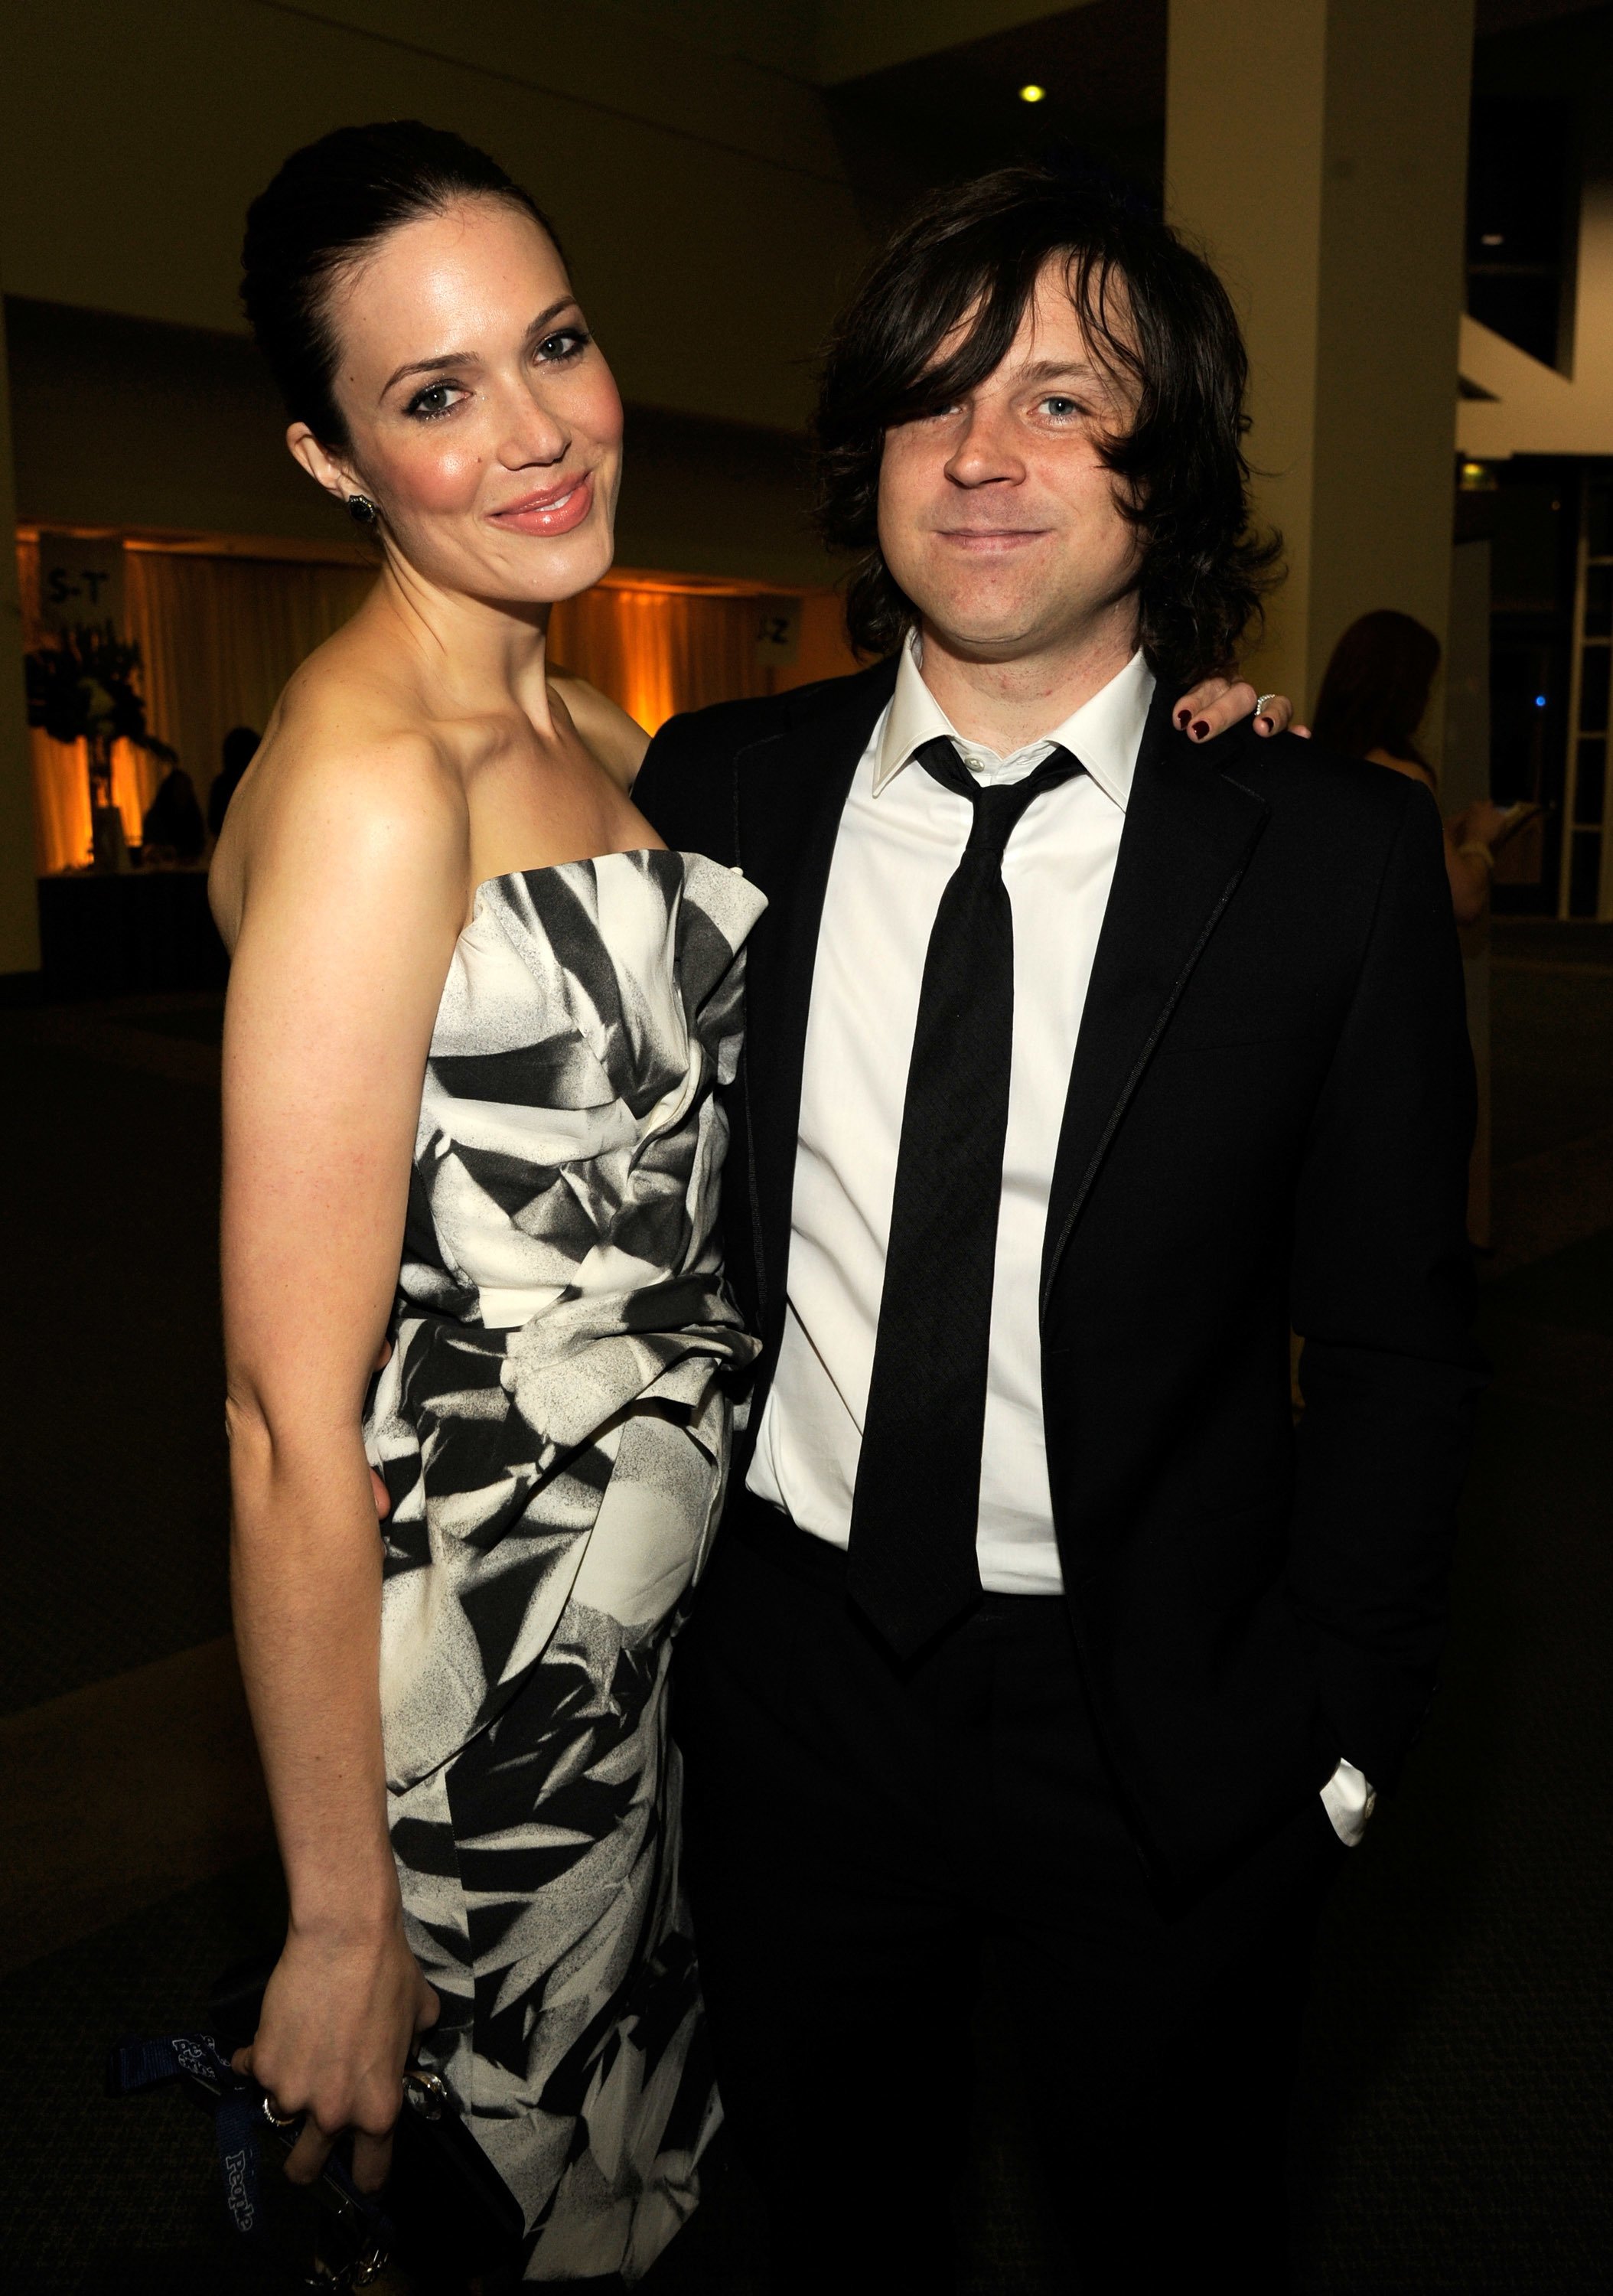 Mandy Moore and Ryan Adams attend The 2012 MusiCares Person Of The Year Gala Honoring Paul McCartney at Los Angeles Convention Center on February 10, 2012 in Los Angeles, California.